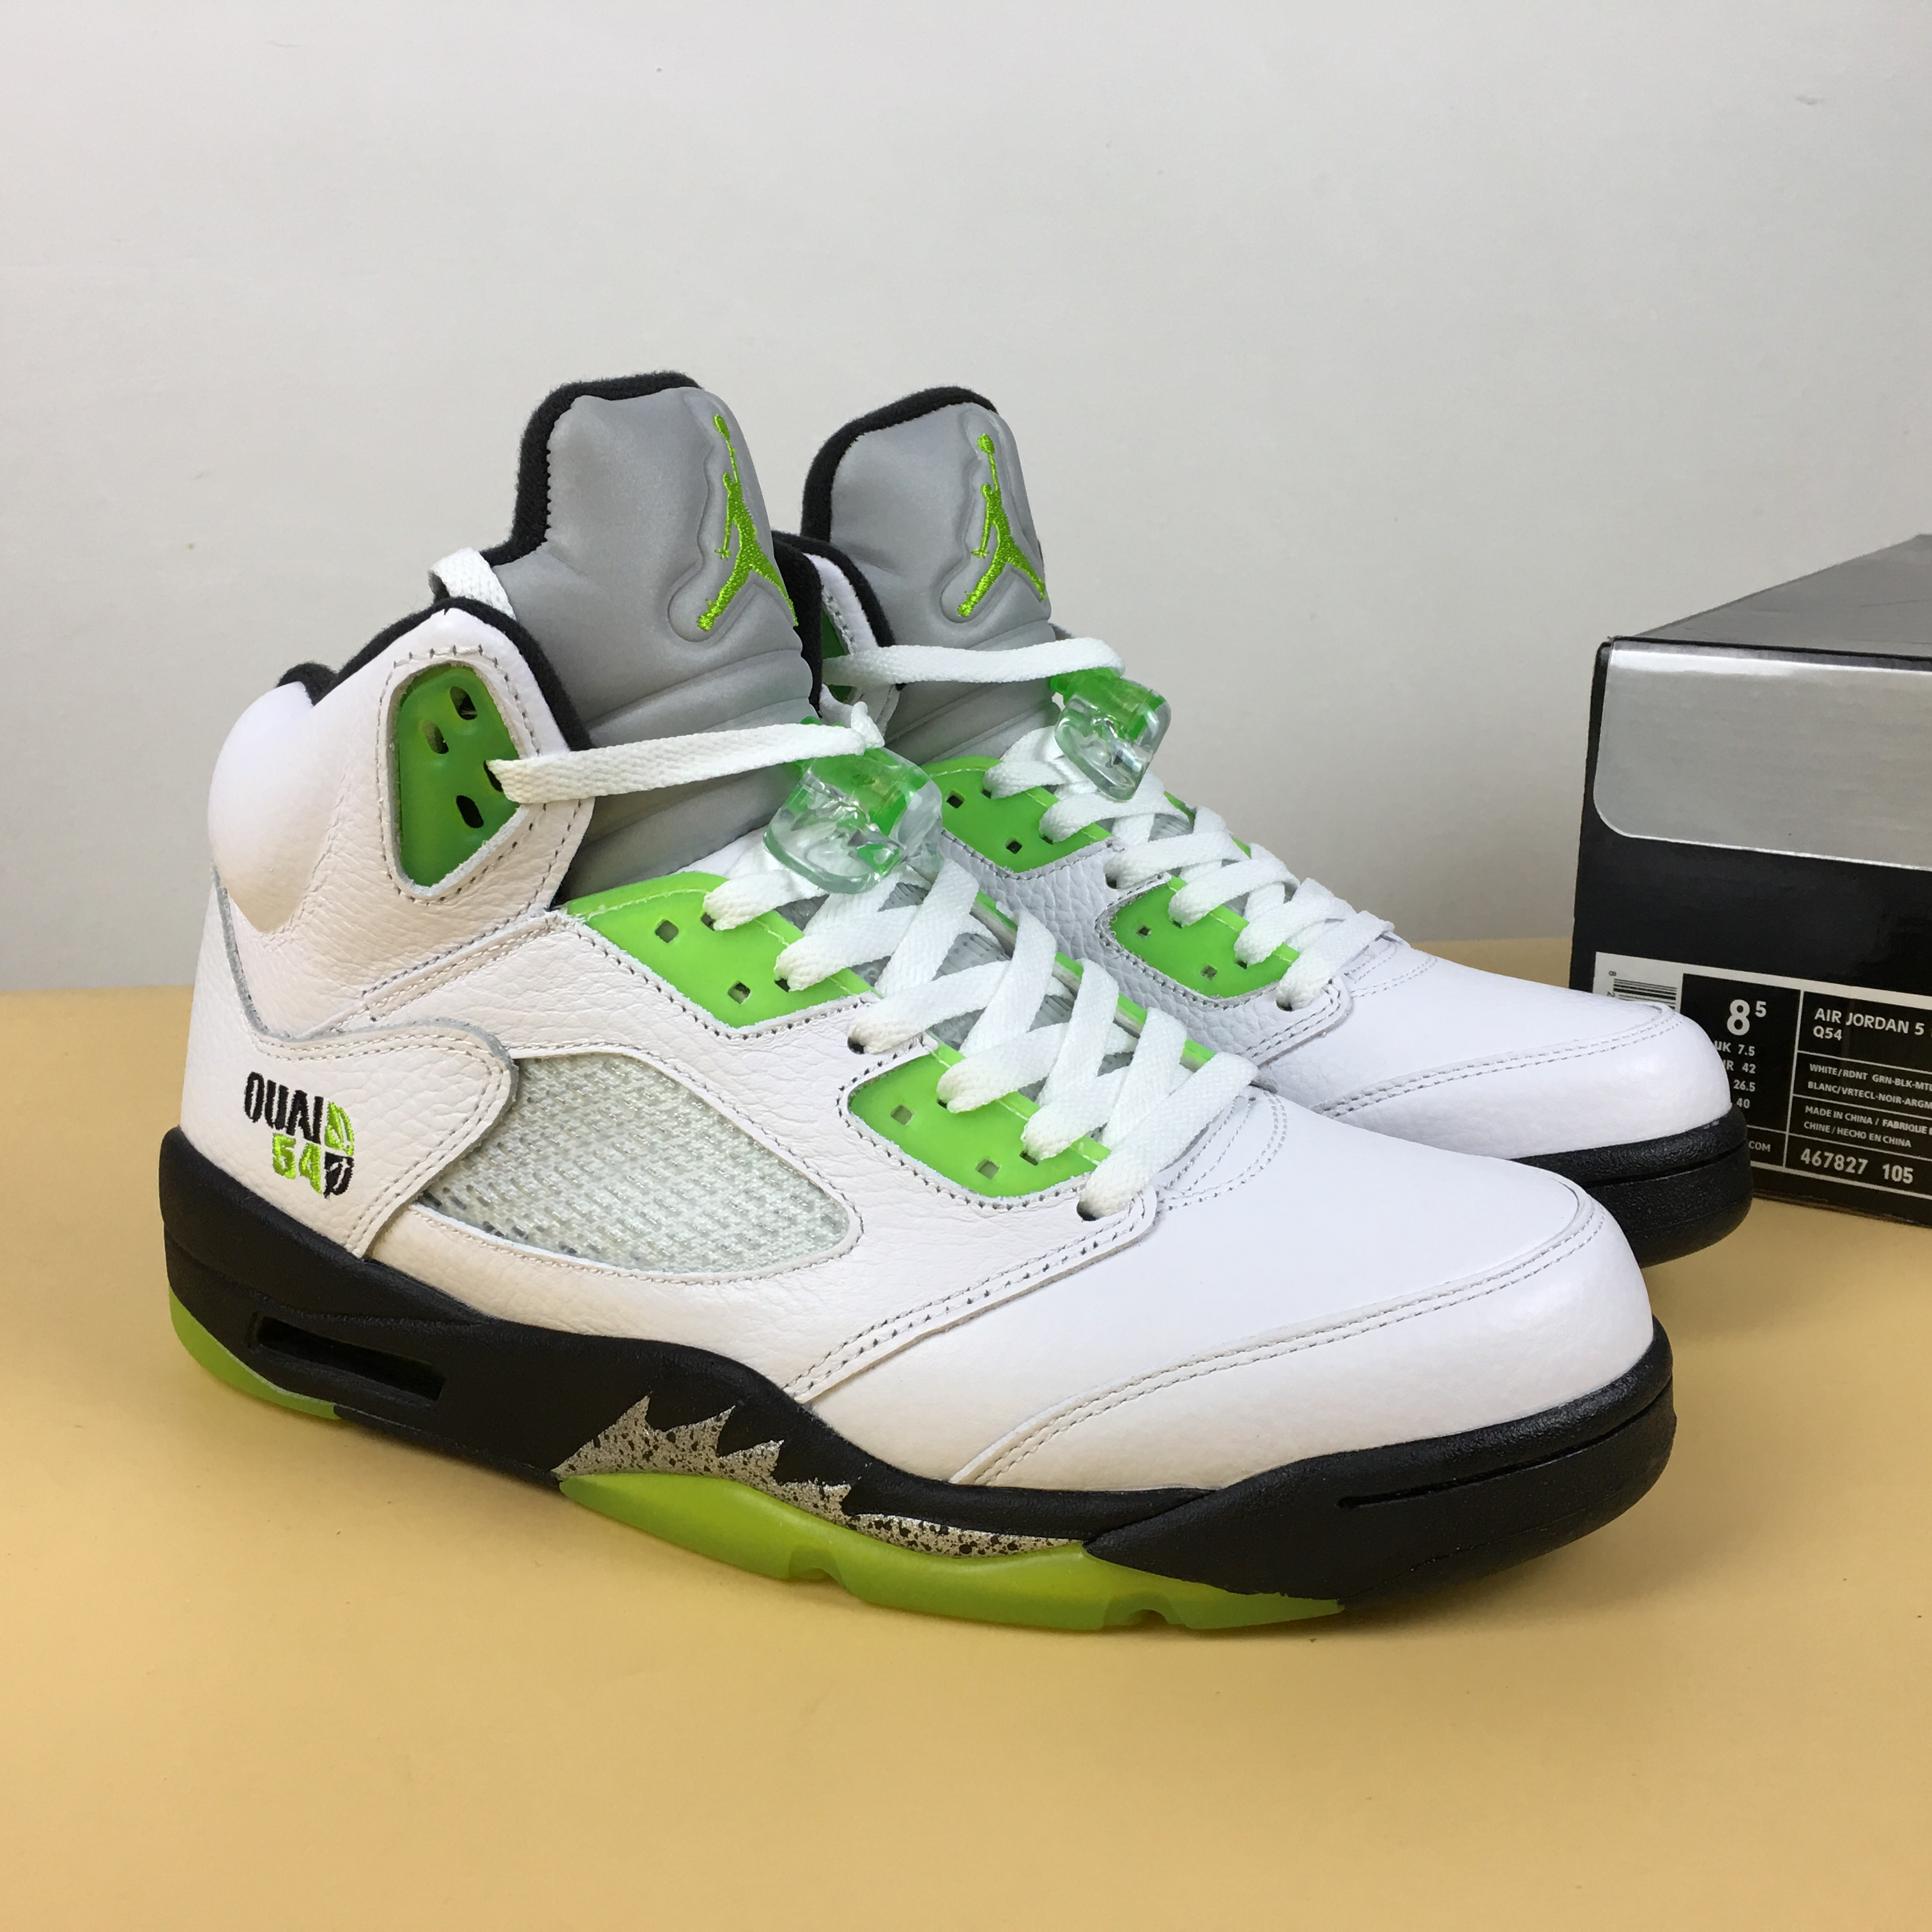 Air Jordan 5 Quai54 White Green Black Shoes